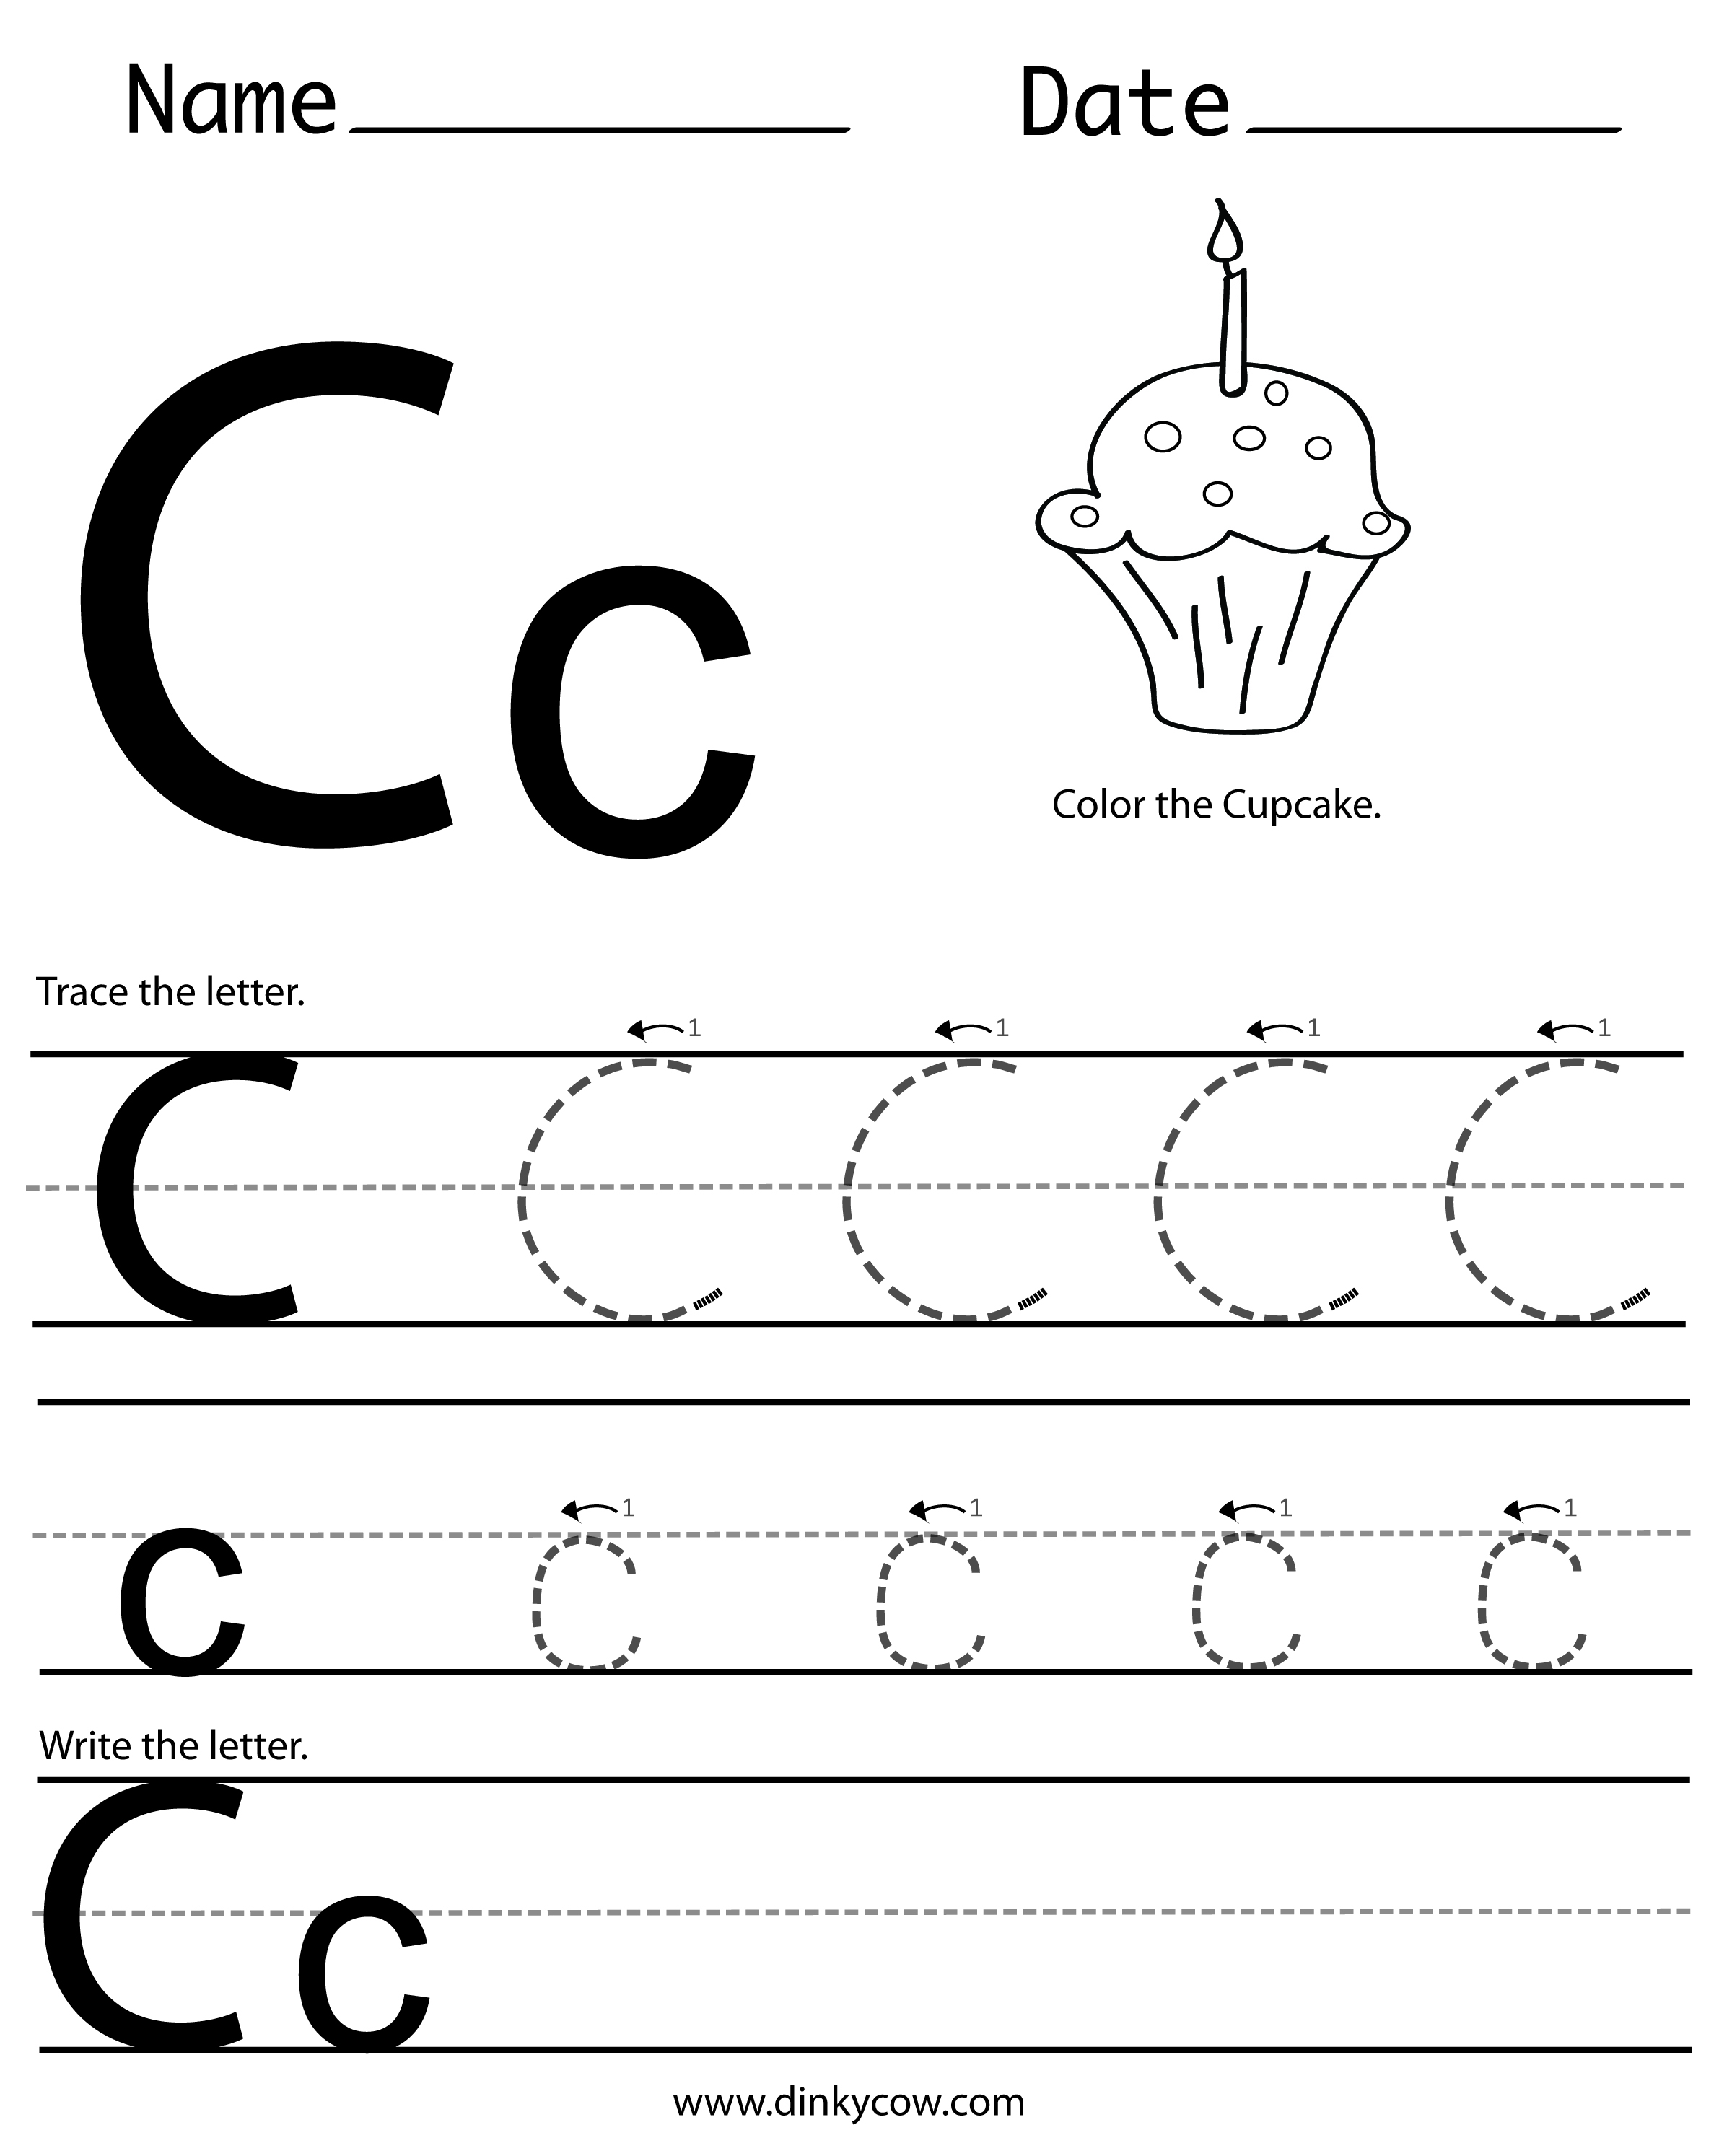 6 Best Images of Free Printable Preschool Worksheets Letter C ...